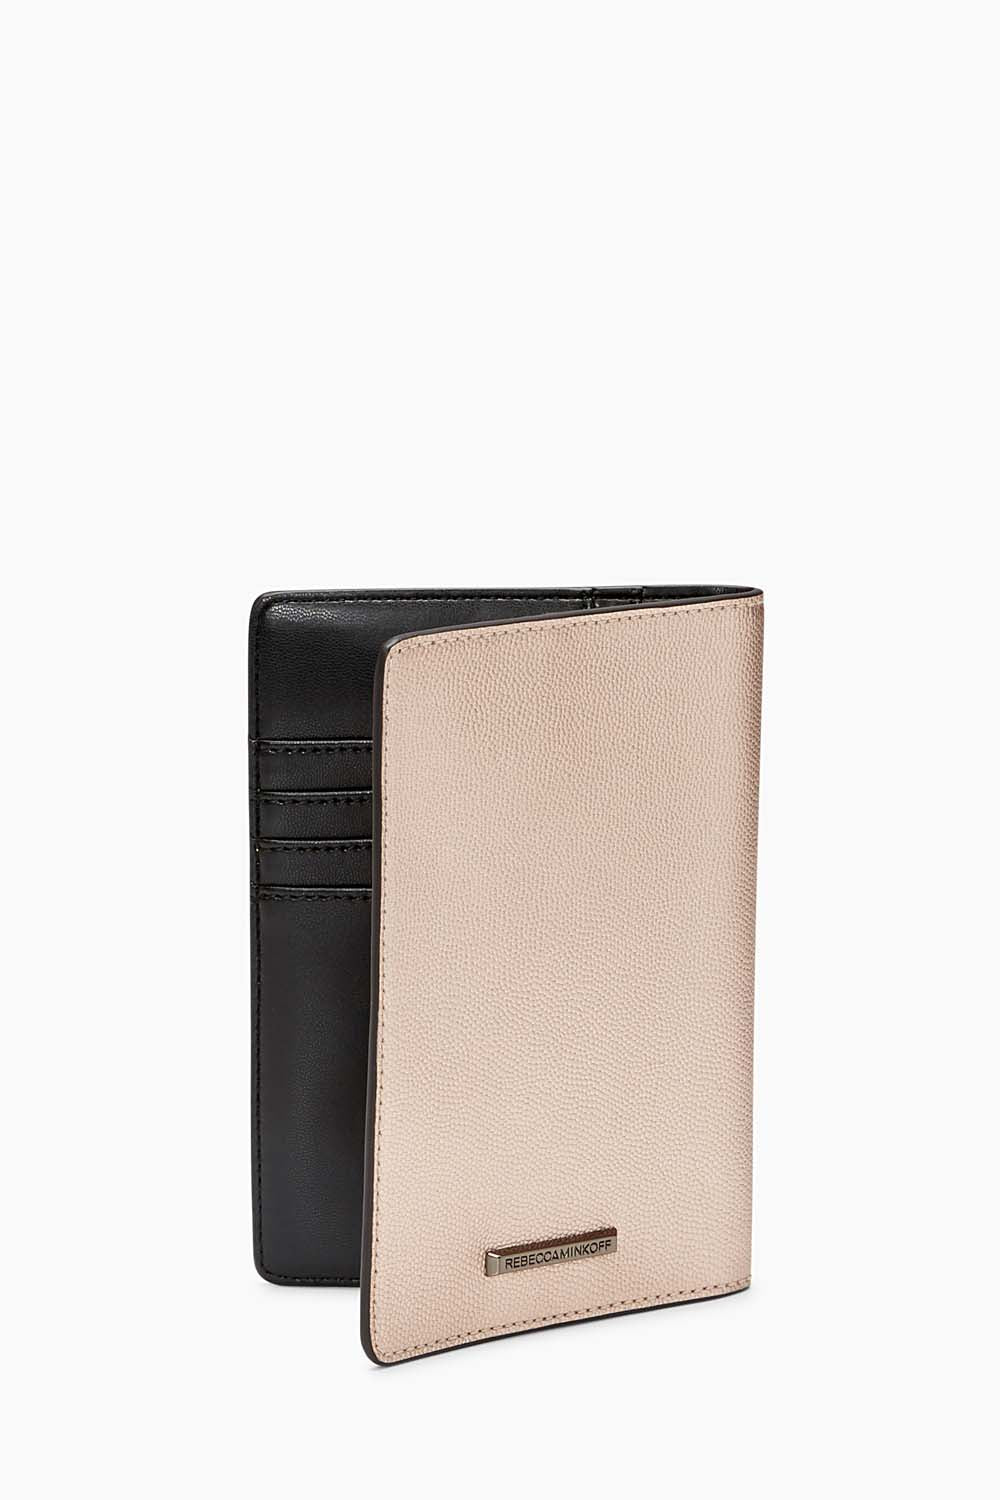 Passport Case - Adventure Awaits